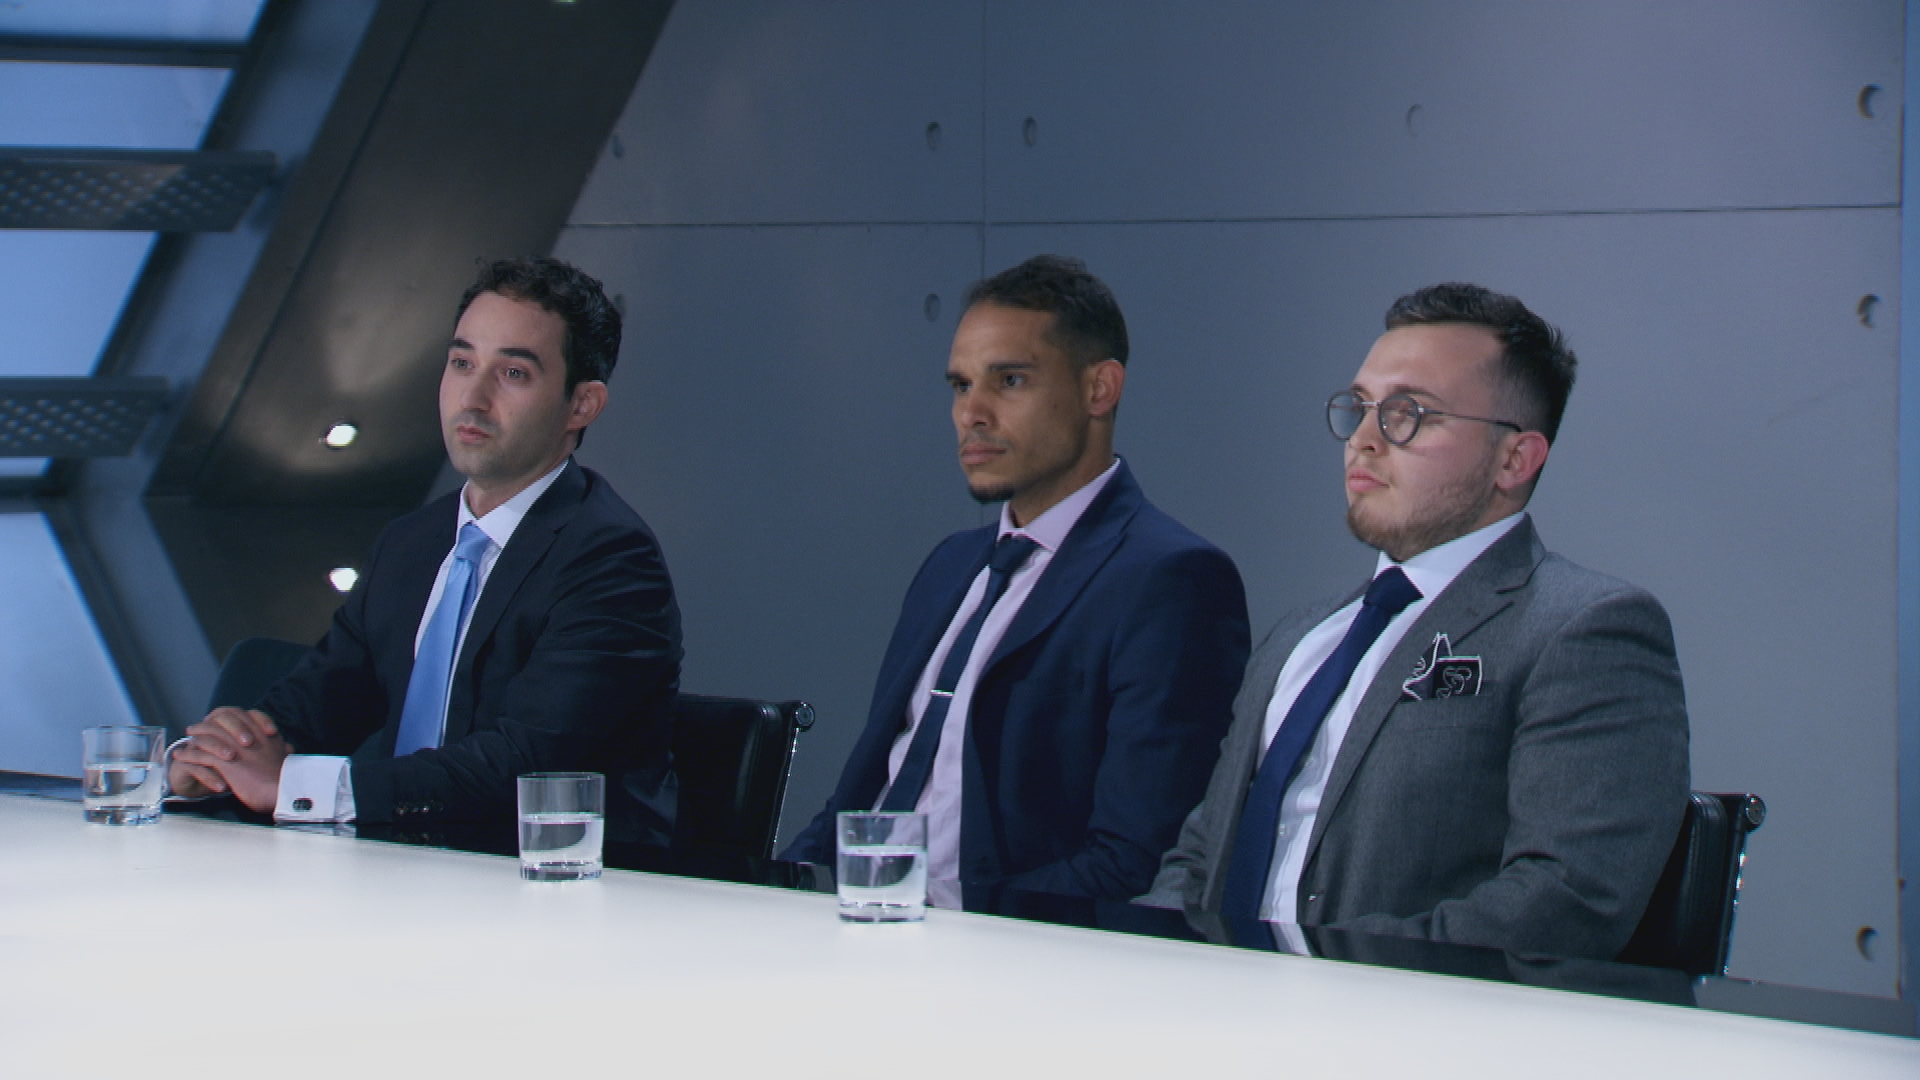 Elliot, Danny and Charles in the boardroom.